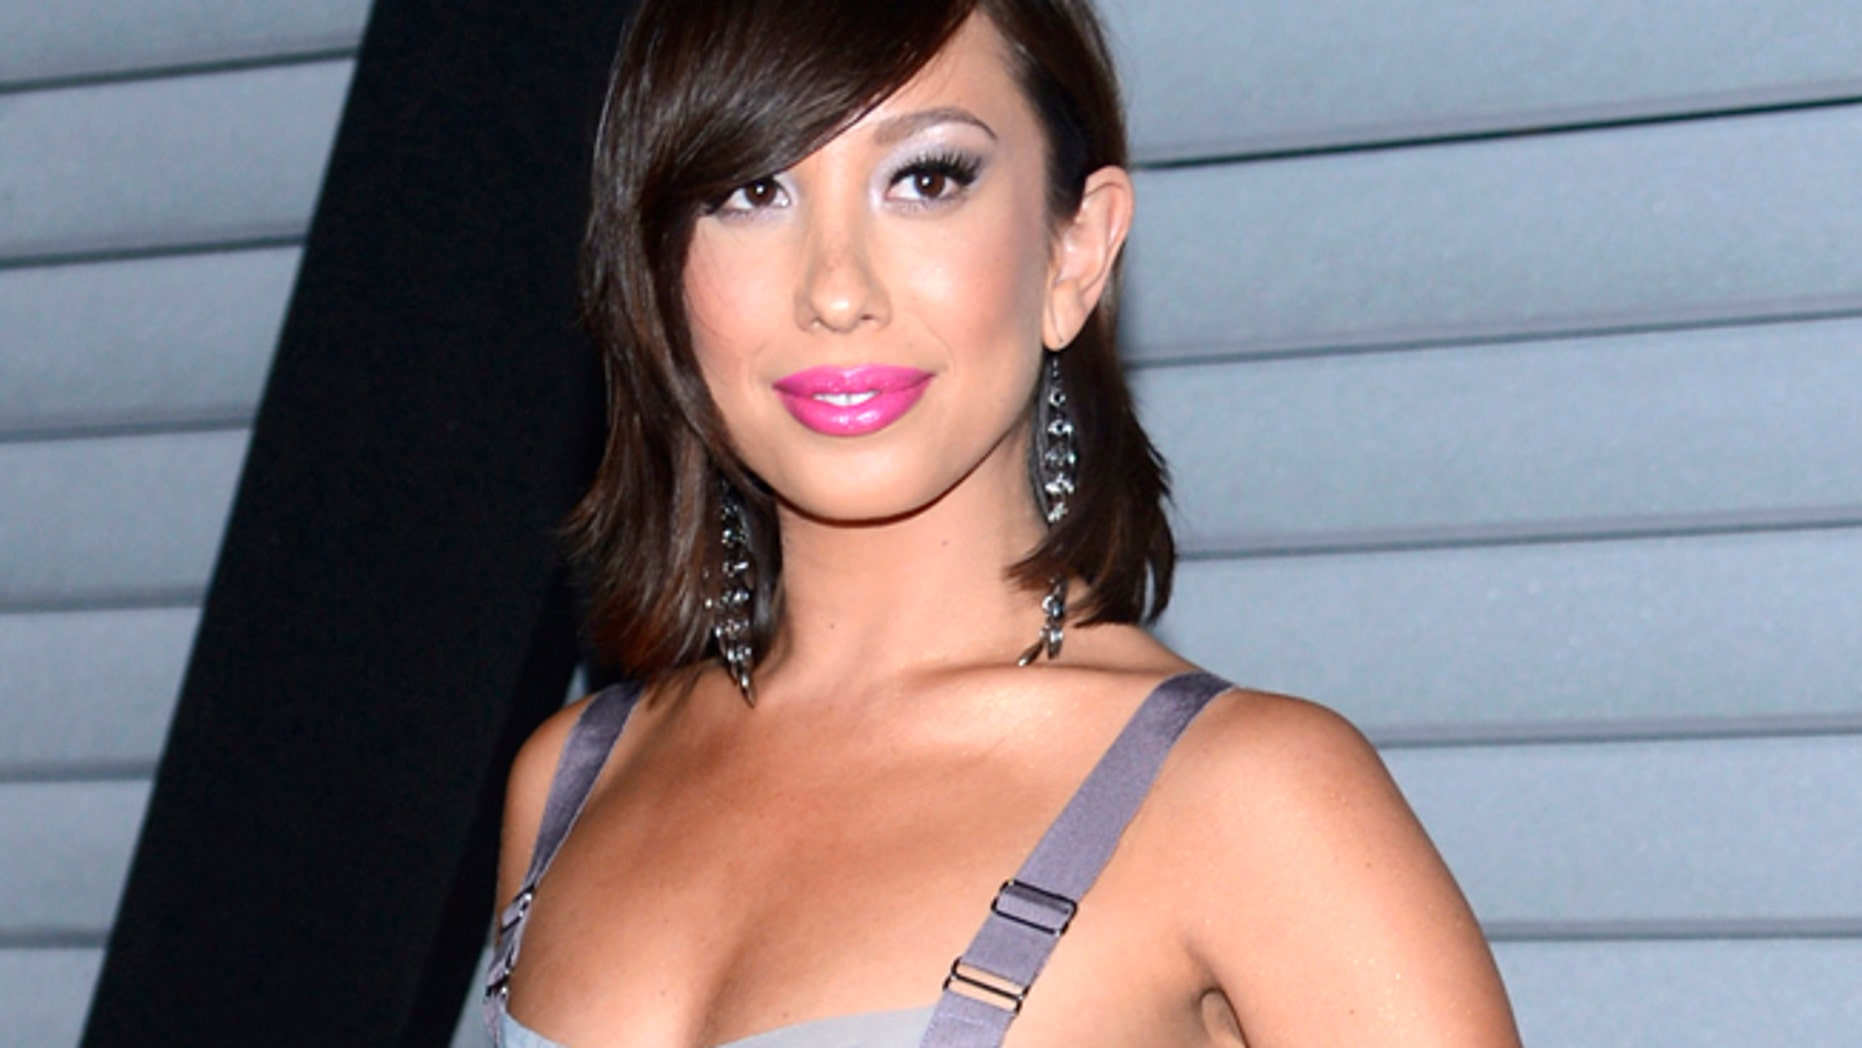 Dancer Cheryl Burke attends the Maxim Hot 100 event in West Hollywood, California June 10, 2014. REUTERS/Phil McCarten (UNITED STATES - Tags: ENTERTAINMENT) - RTR3T5Y9